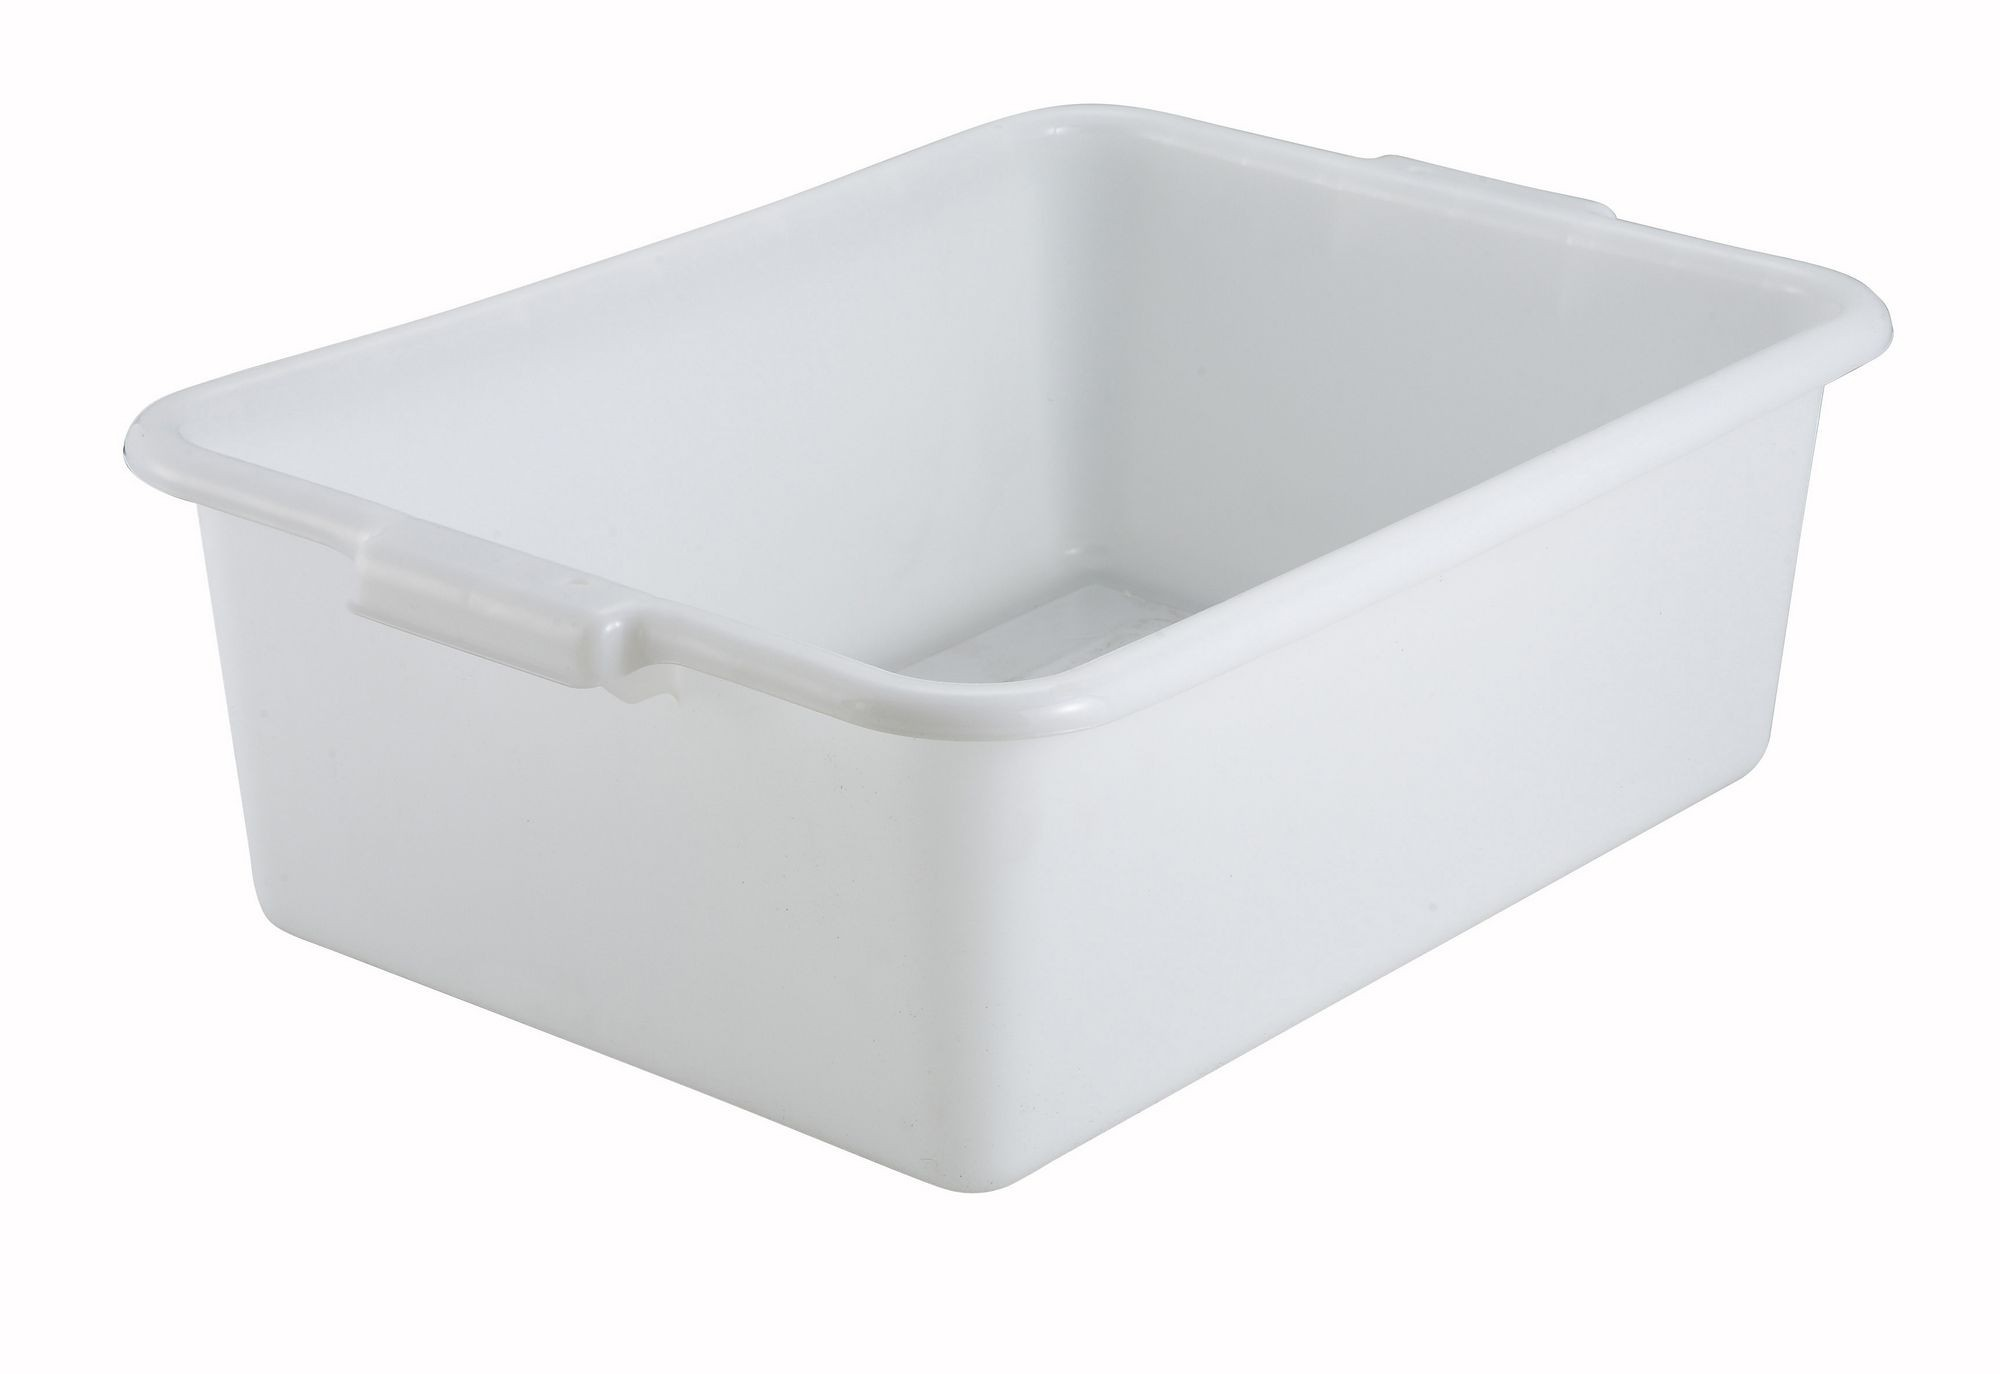 White Dish Box - 20-1/4 x 15-1/2 x 7